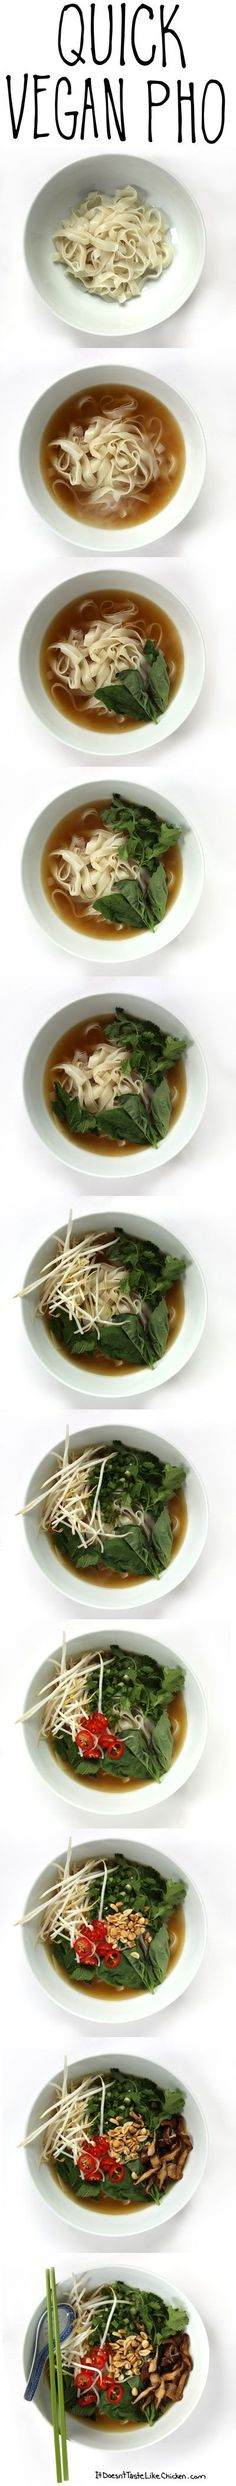 Quick Vegan Pho. 30 minutes to make. Very healthy. Great for fighting away winter colds! #itdoesnttastelikechicken